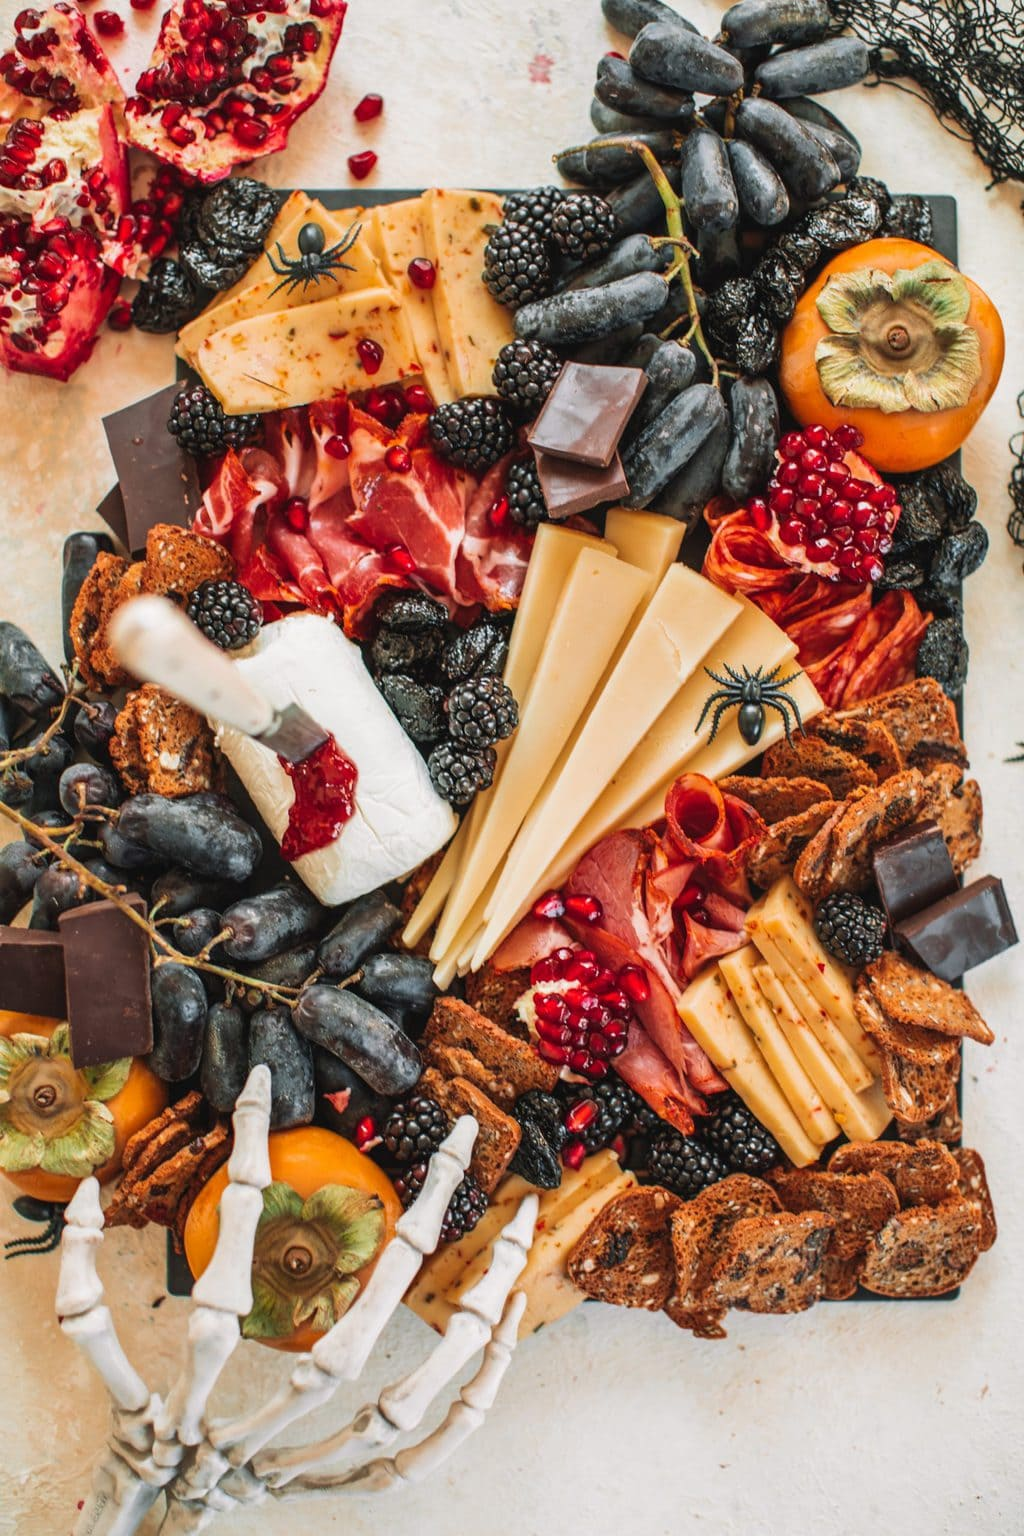 A spooky cheeseboard with cheeses, fruits, crackers and nuts.